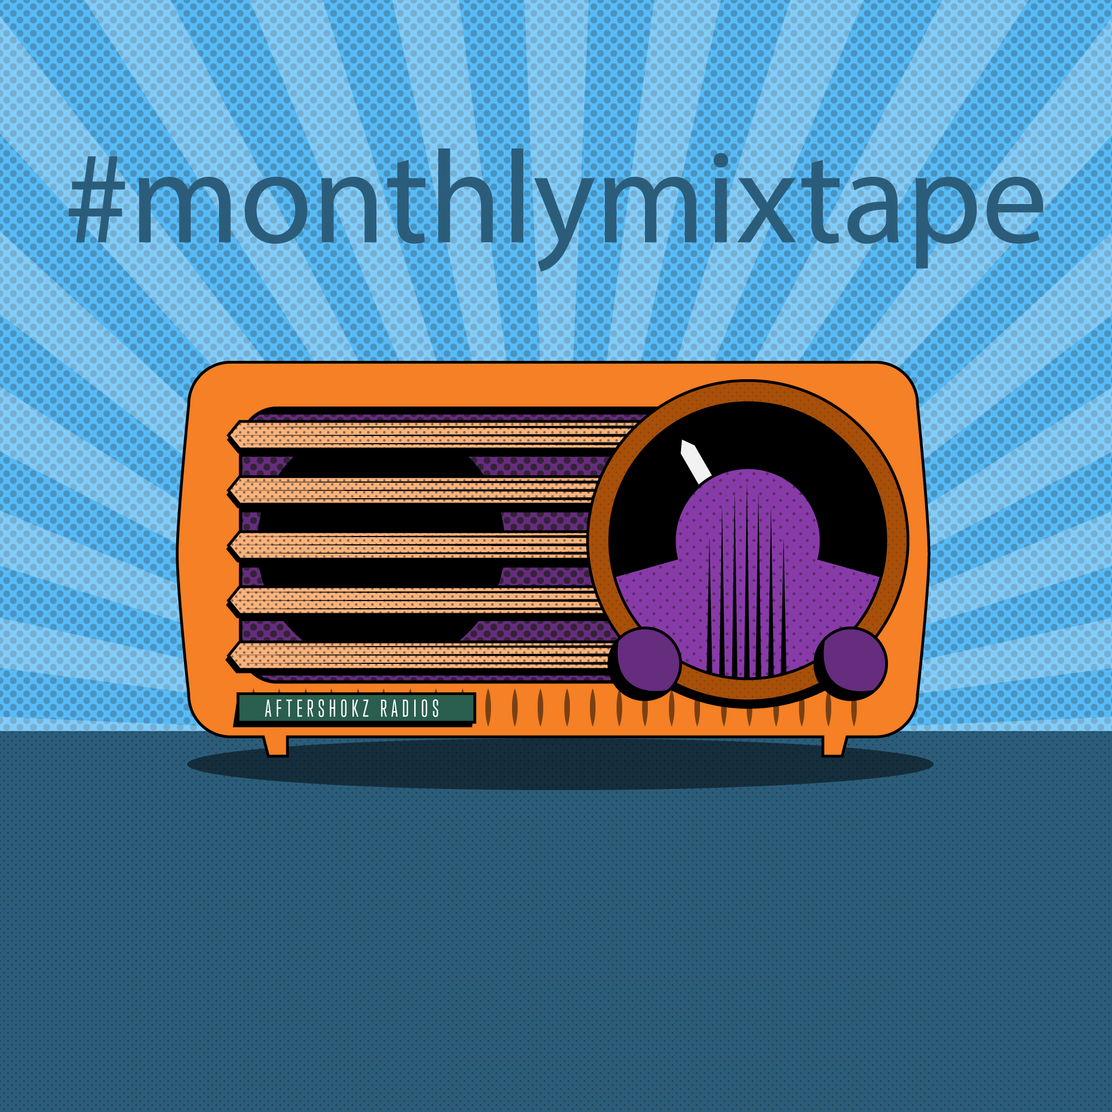 AfterShokz Monthly Mixtape: March 2016